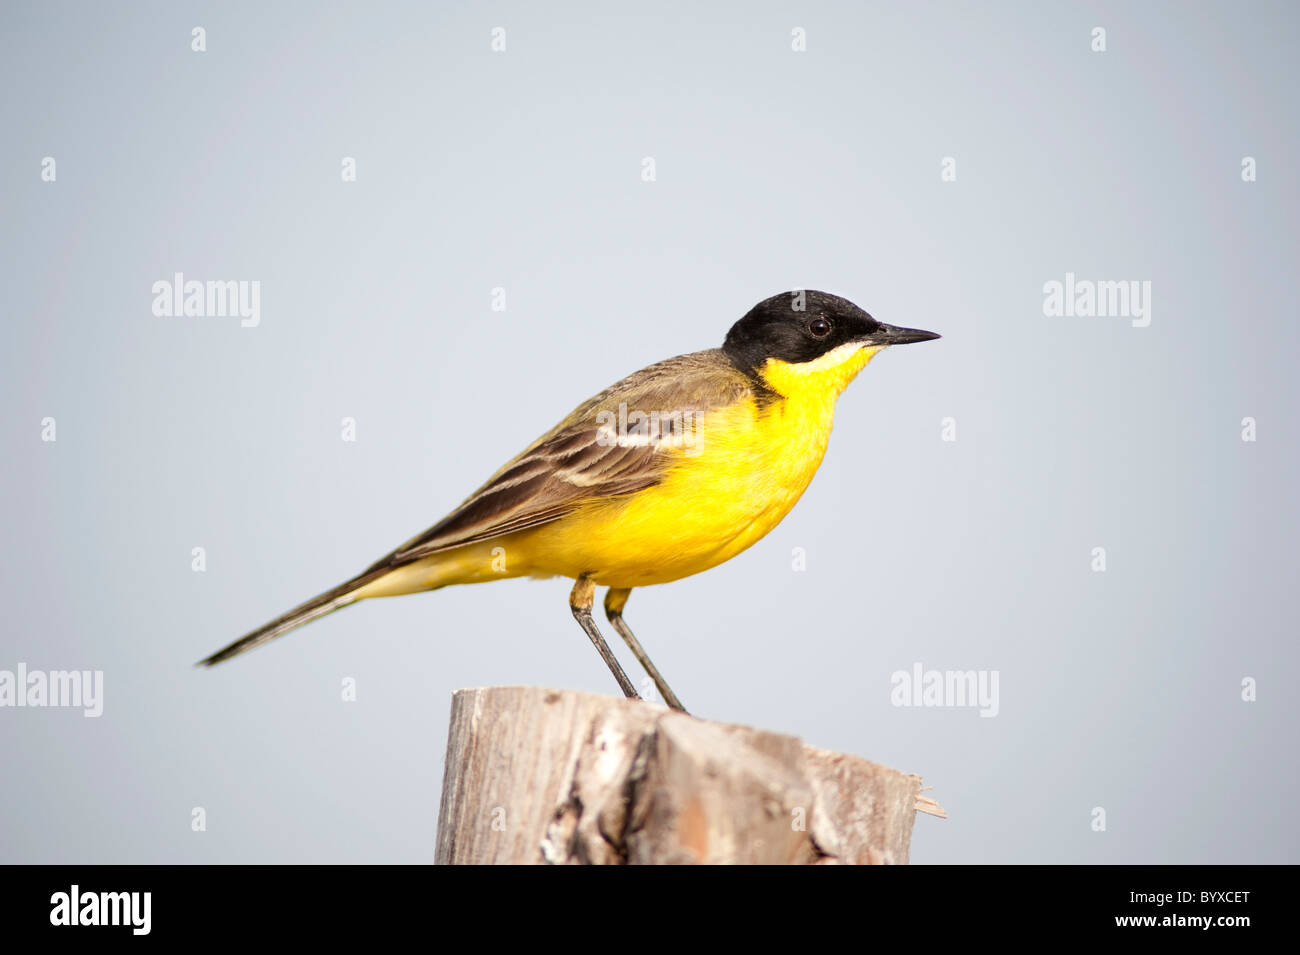 Black Headed Wagtail Motacilla flava Lesvos Greece - Stock Image